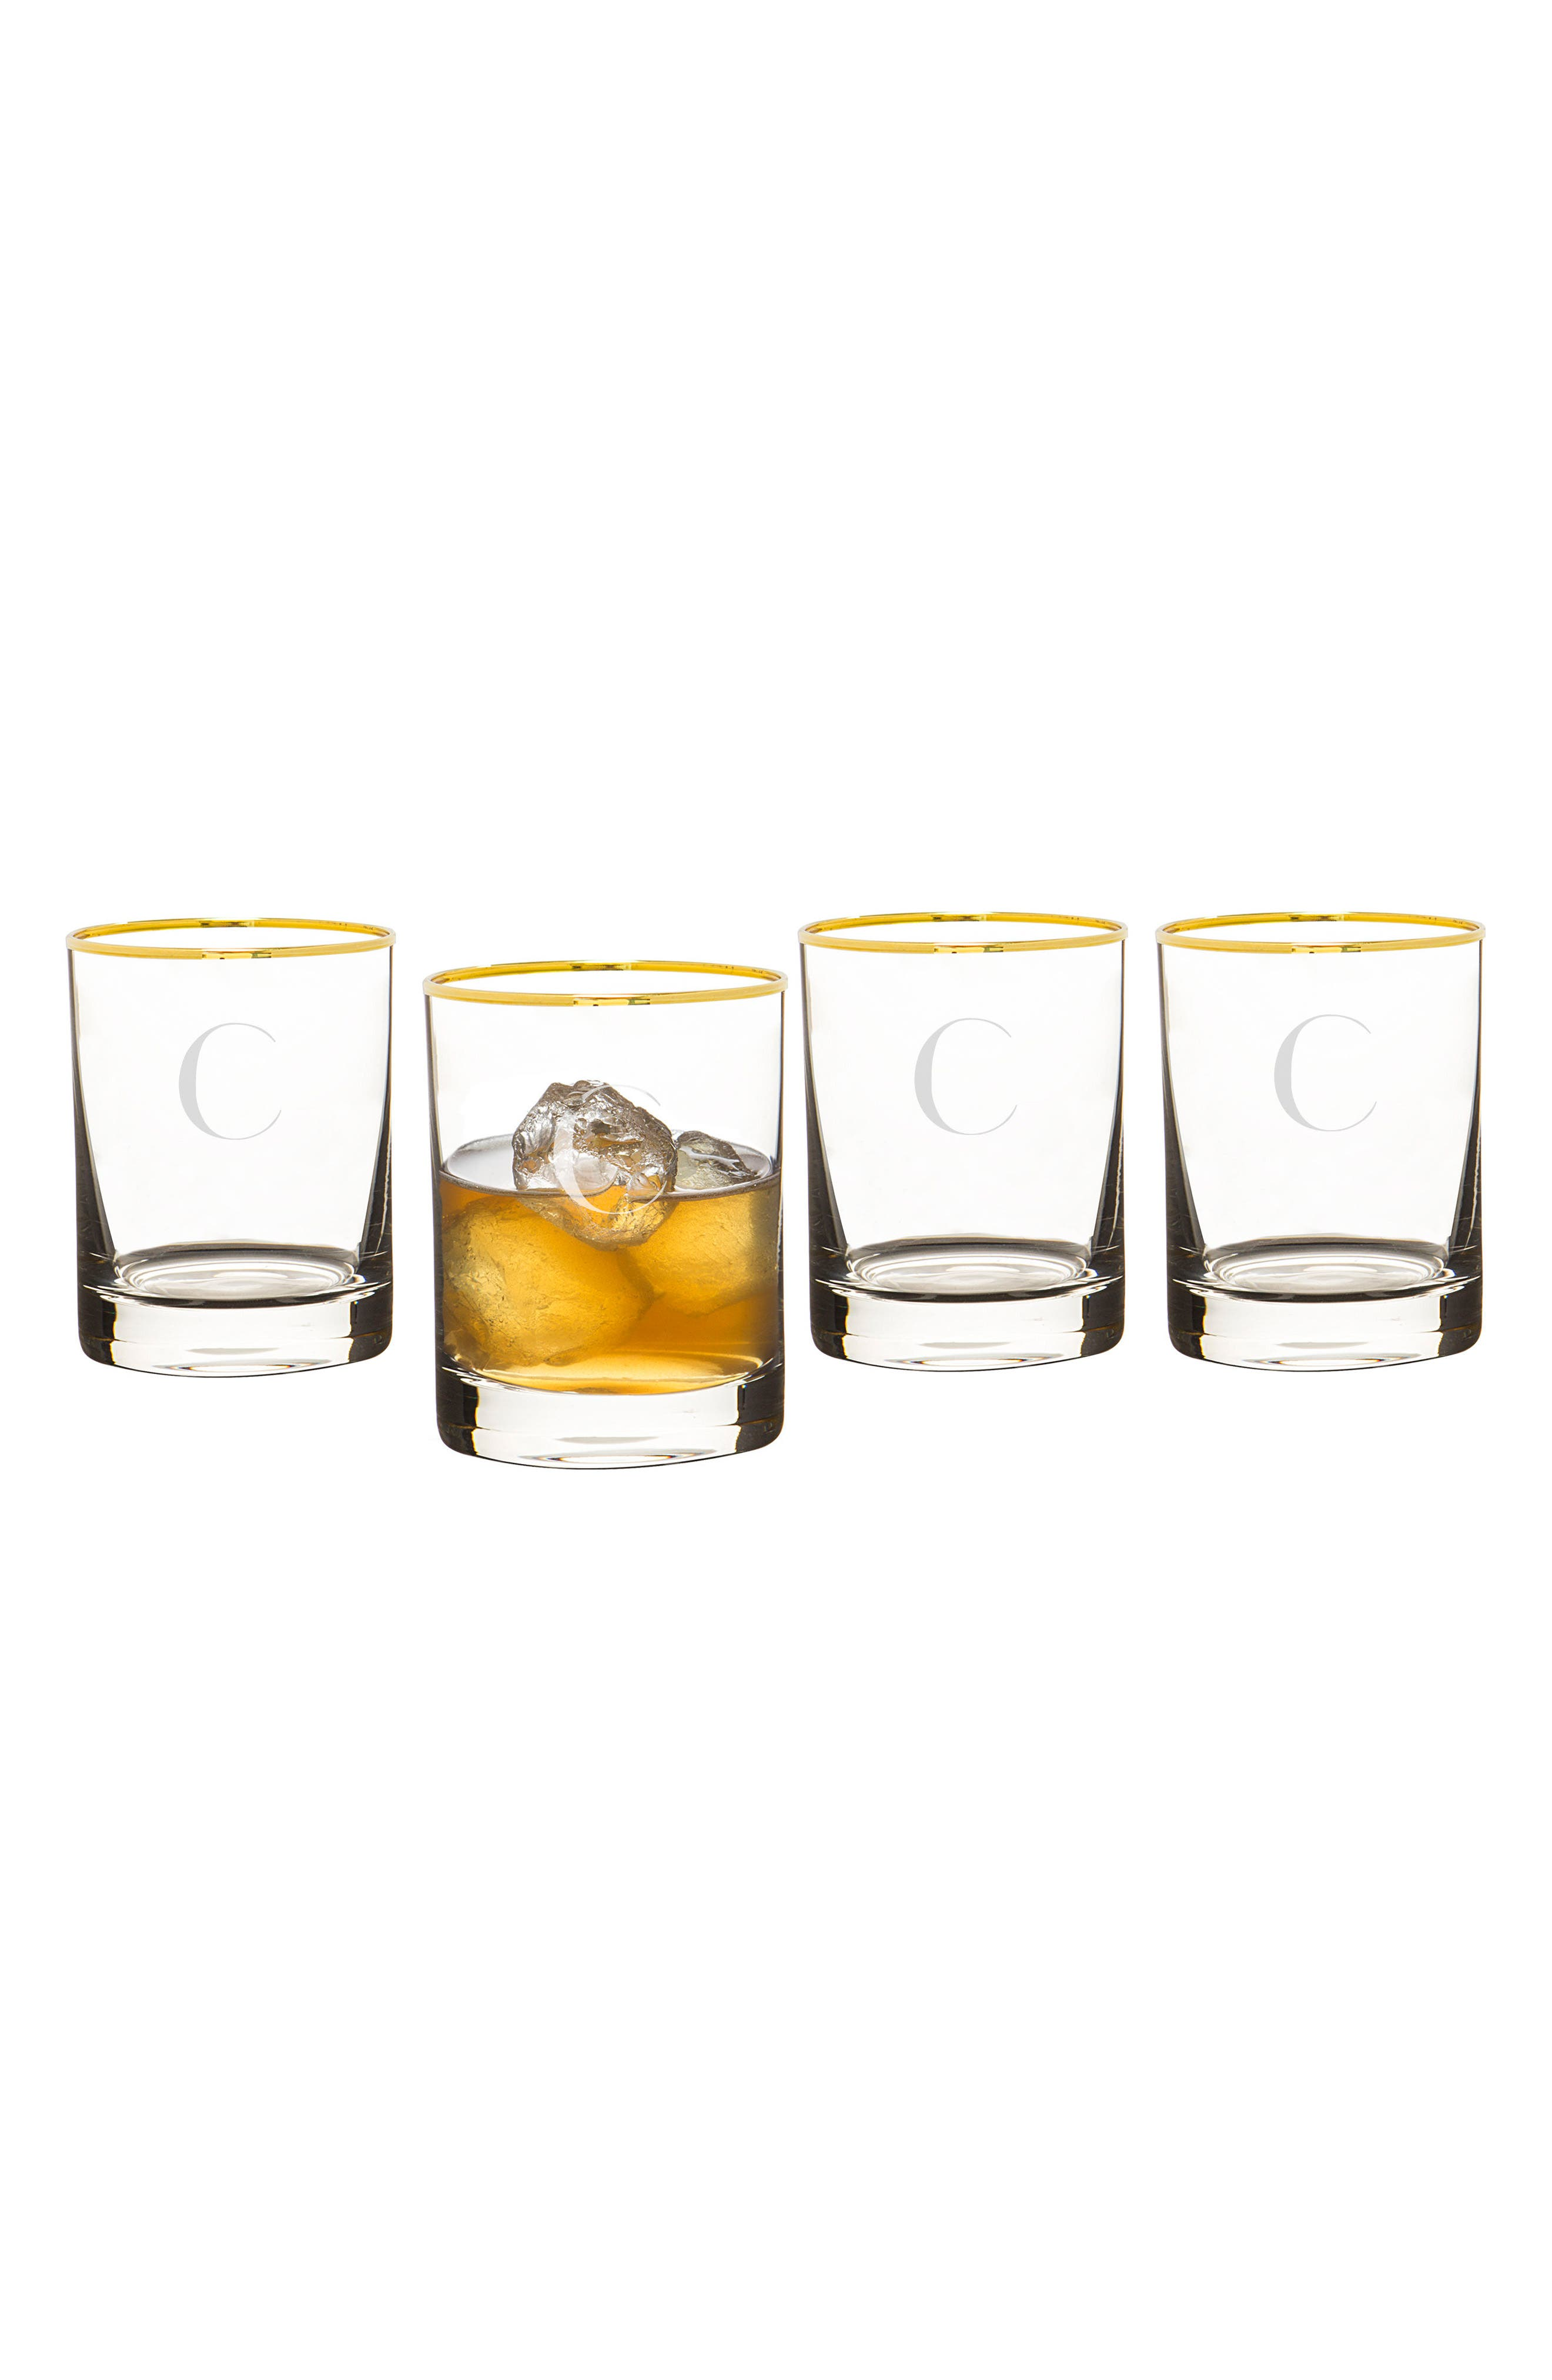 Monogram Set of 4 Double Old Fashioned Glasses,                             Main thumbnail 4, color,